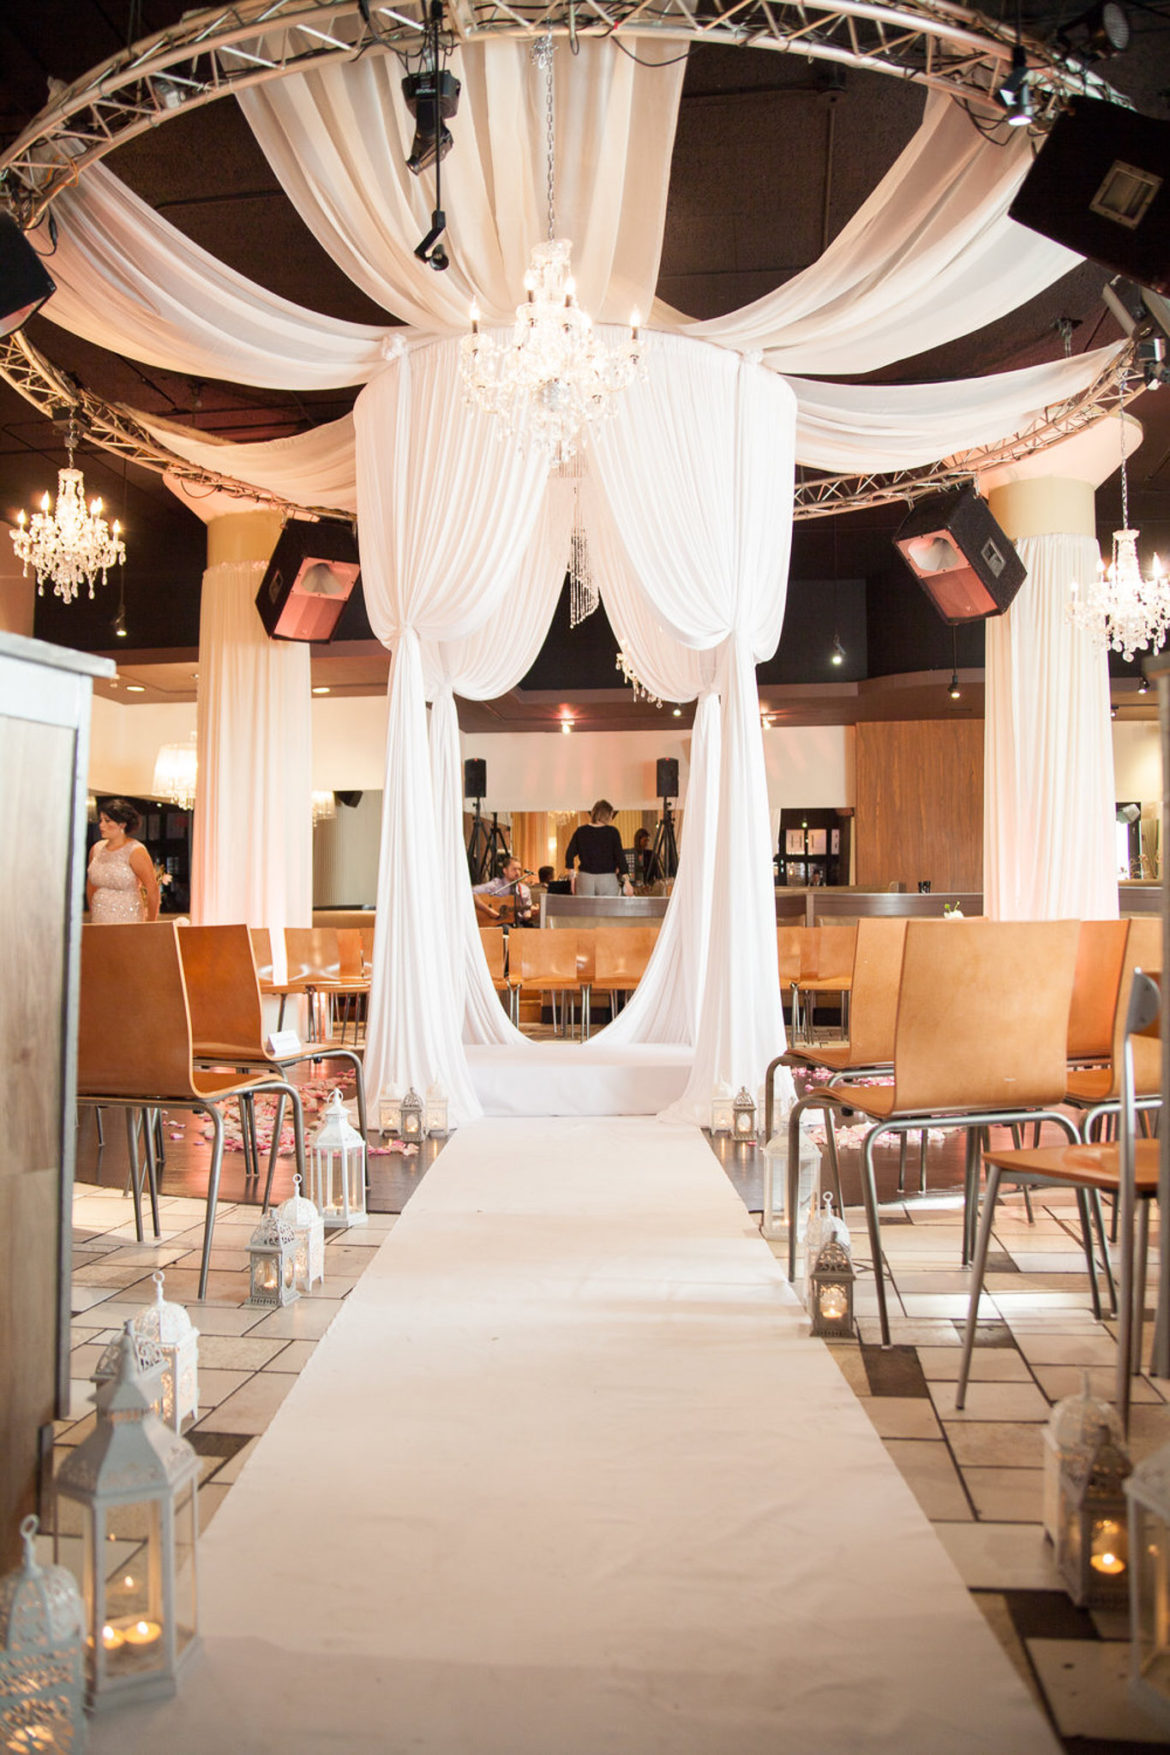 Elegant_Event_Lighting_Chicago_Nacional_27_Wedding_Ceremony_Bridal_Canopy_Ceiling_Draping_Aisle_Runner